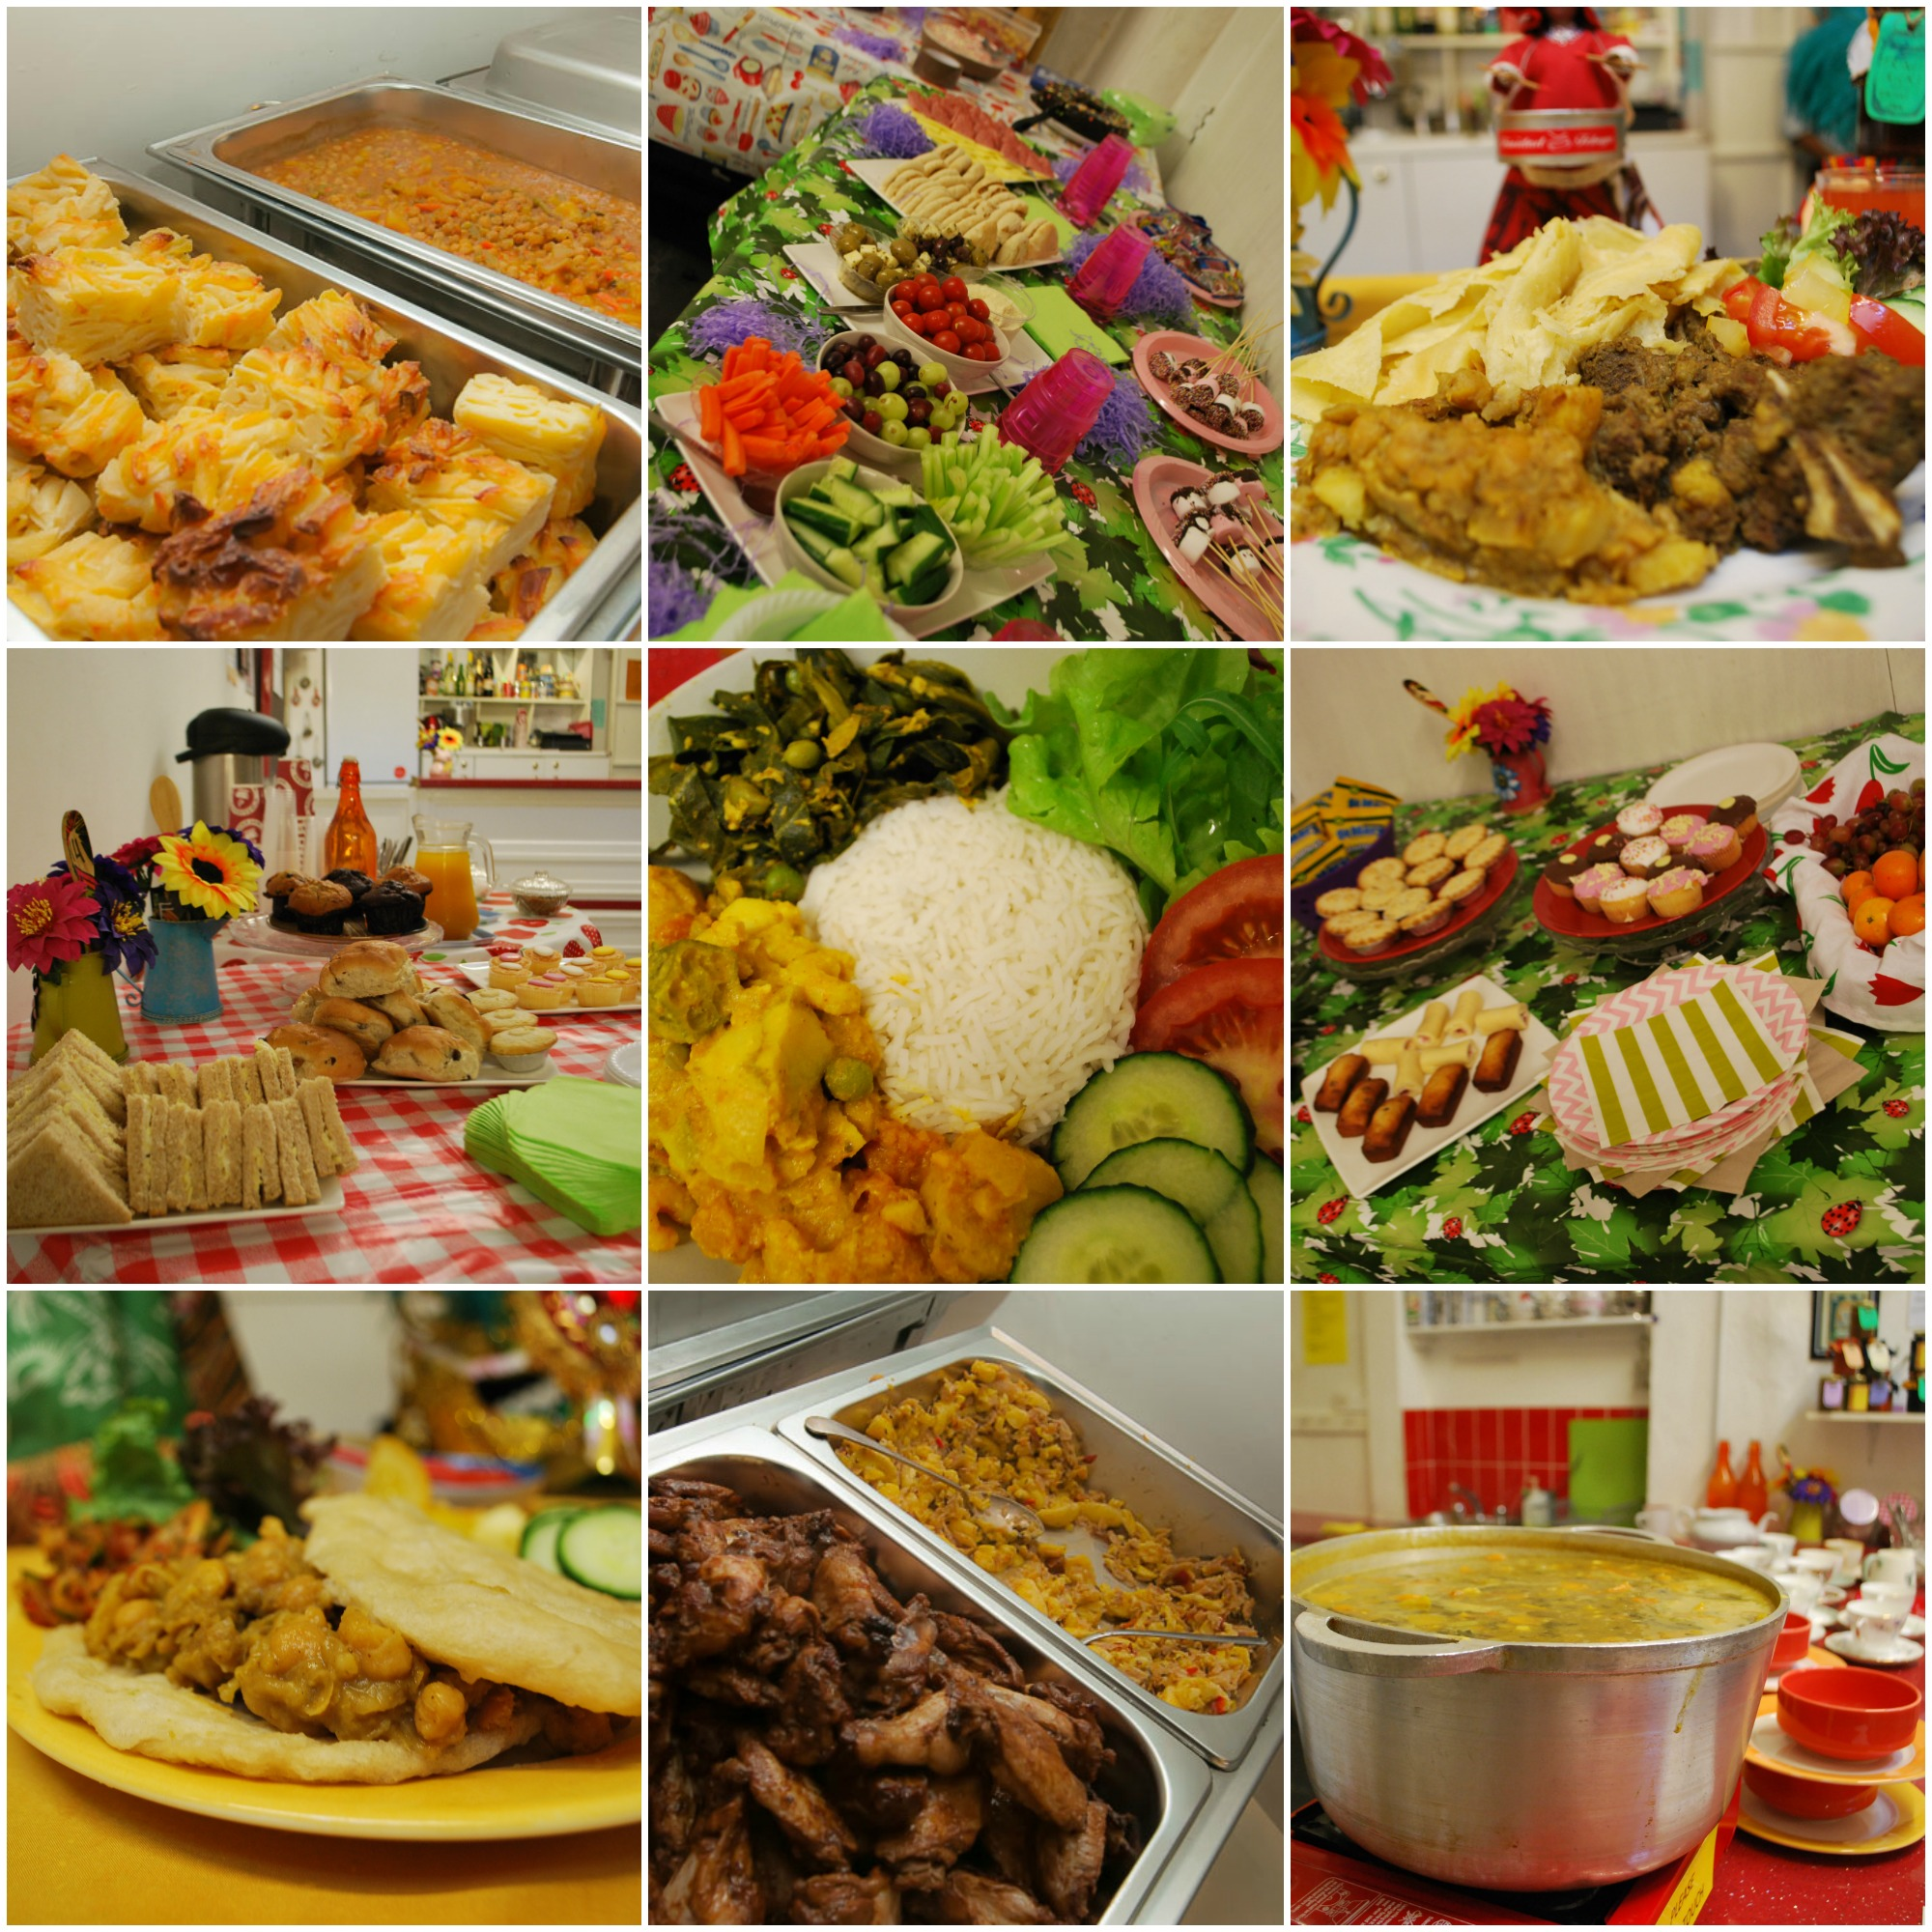 Jamaican Cuisine Cafe Catering By C A F E Sunshine International Arts